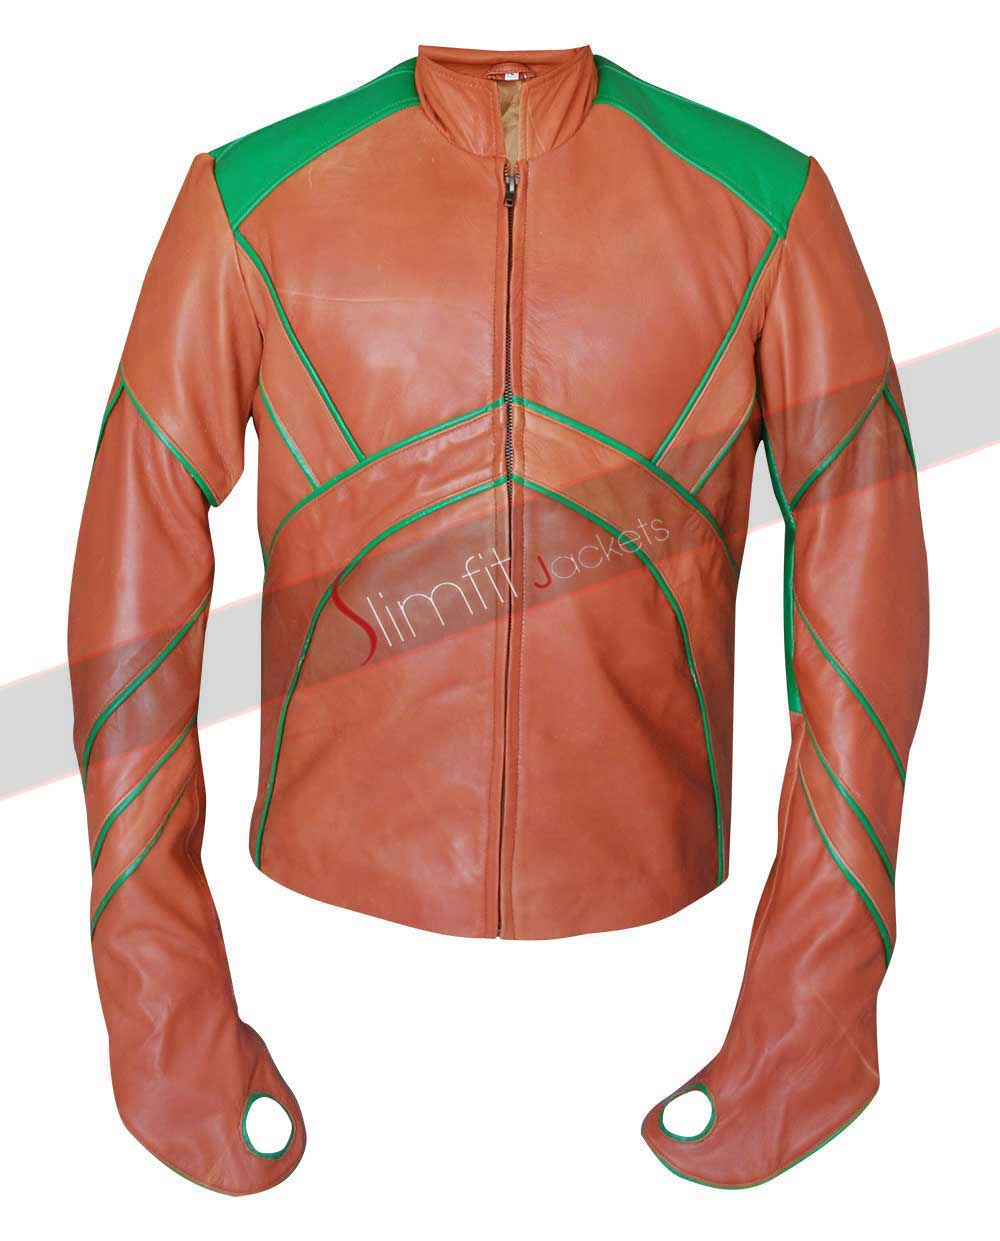 Jason Momoa Vest: Justice League Jason Momoa (Aquaman) Coat Jacket